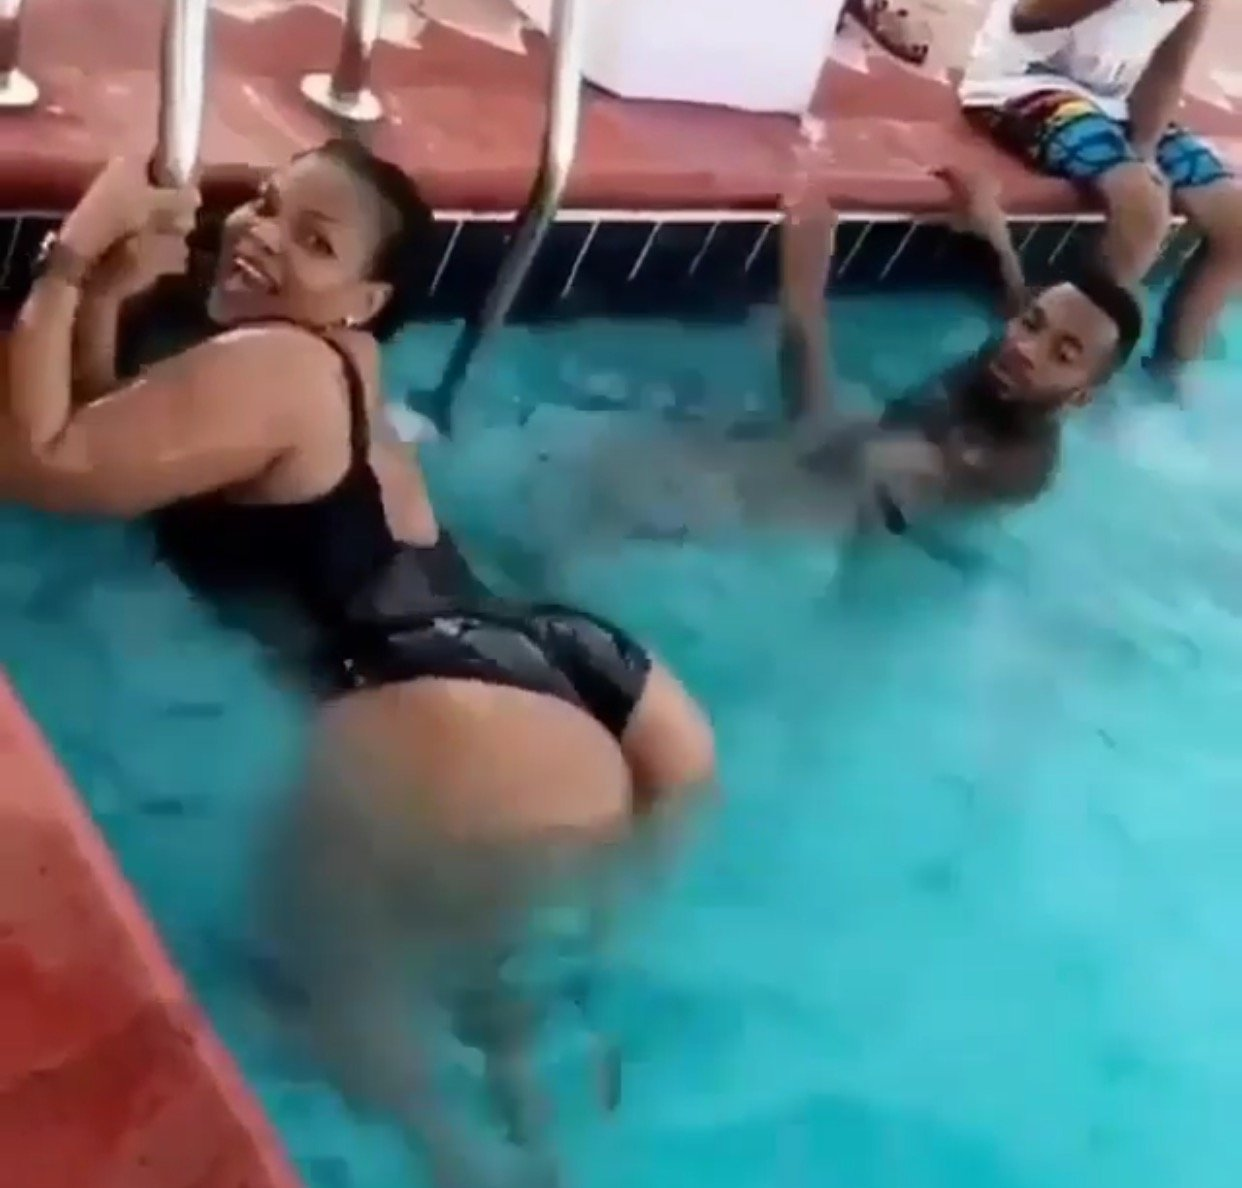 Wema Sepetu confirms her 'assets' are real as she parades them in a black swimming custome